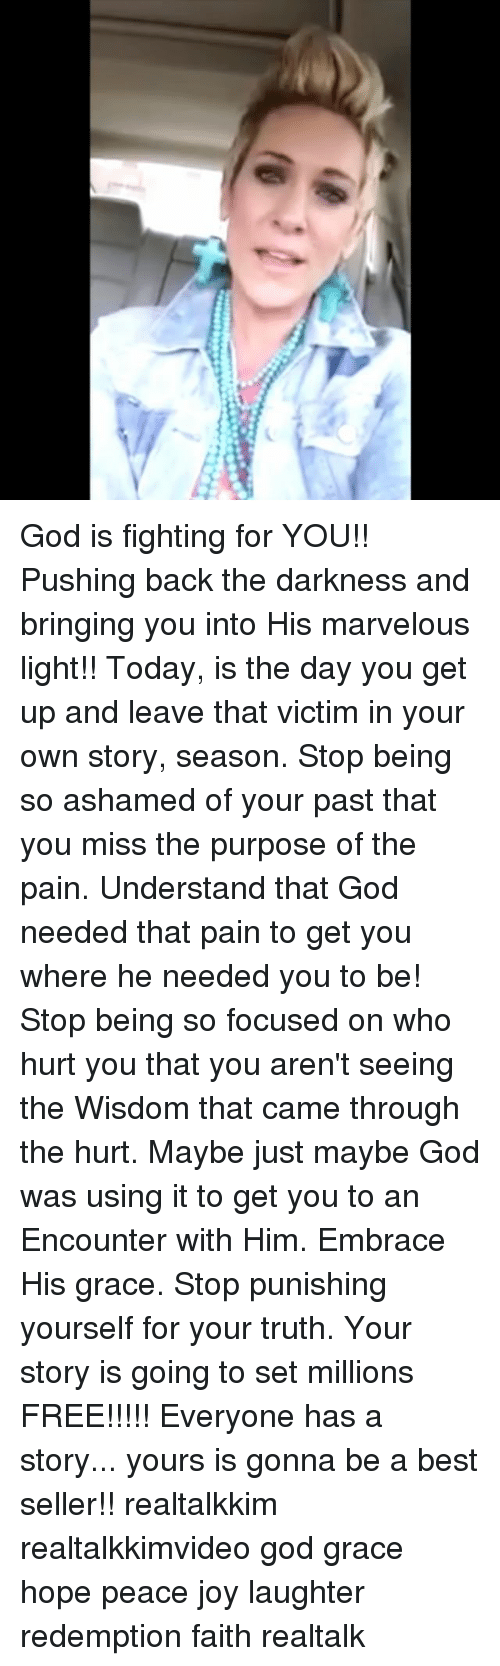 God, Memes, and Best: God is fighting for YOU!! Pushing back the darkness and bringing you into His marvelous light!! Today, is the day you get up and leave that victim in your own story, season. Stop being so ashamed of your past that you miss the purpose of the pain. Understand that God needed that pain to get you where he needed you to be! Stop being so focused on who hurt you that you aren't seeing the Wisdom that came through the hurt. Maybe just maybe God was using it to get you to an Encounter with Him. Embrace His grace. Stop punishing yourself for your truth. Your story is going to set millions FREE!!!!! Everyone has a story... yours is gonna be a best seller!! realtalkkim realtalkkimvideo god grace hope peace joy laughter redemption faith realtalk